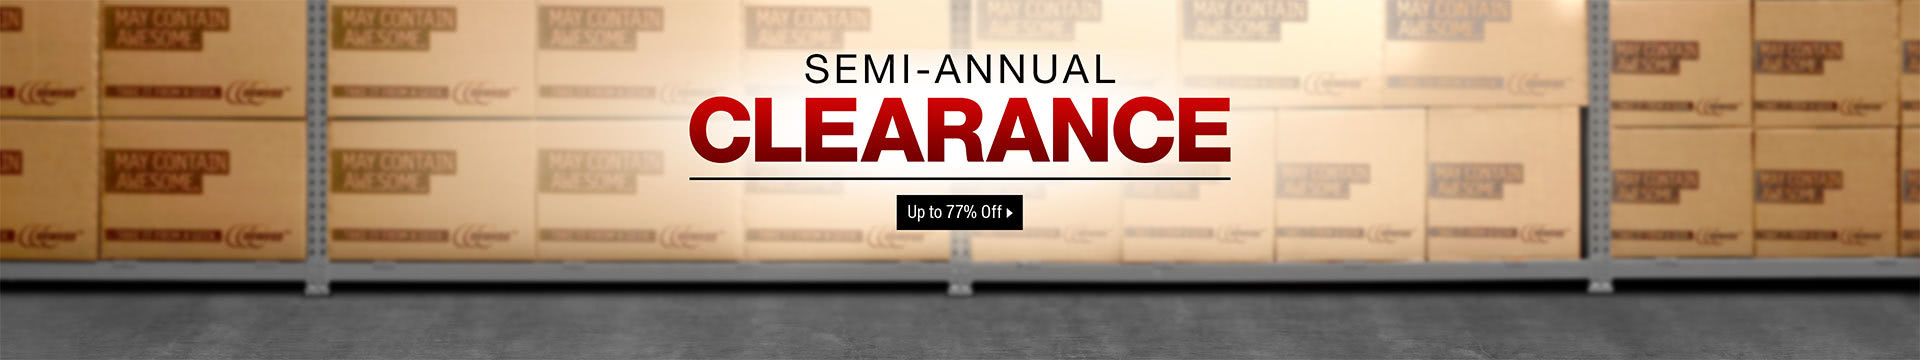 Semi-Annual Clearance